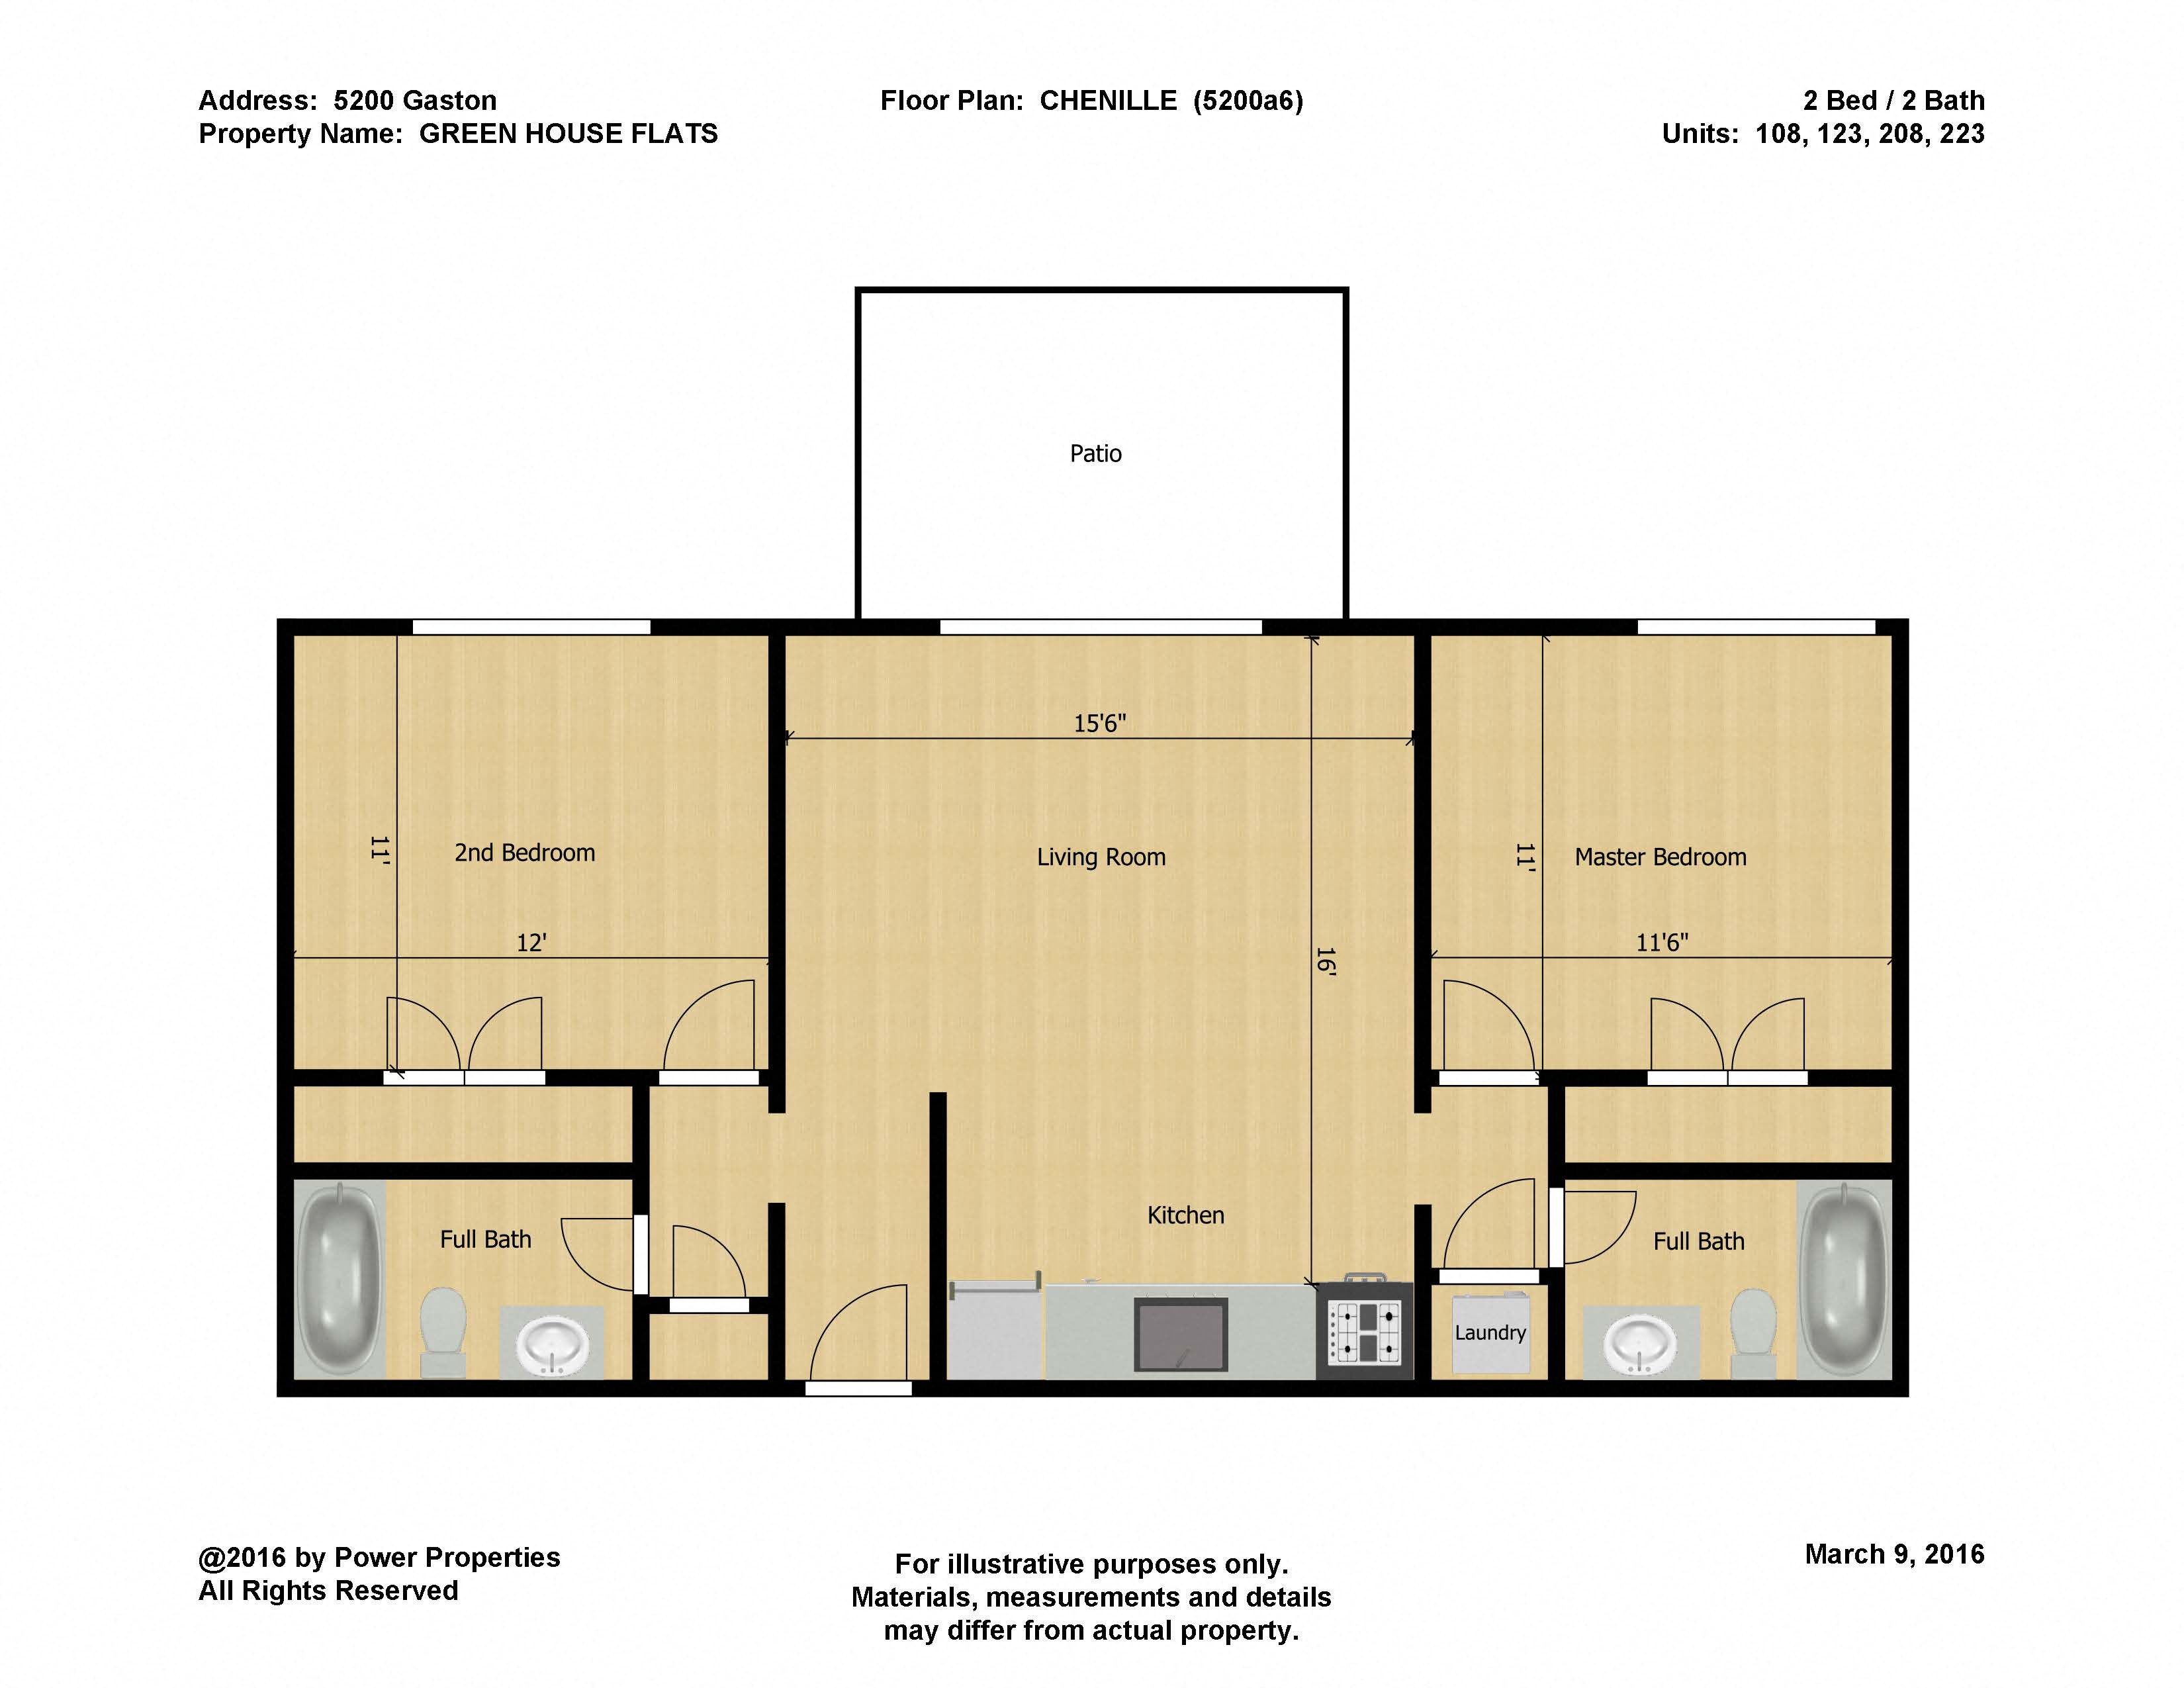 5200 Gaston GREEN HOUSE FLATS- CHENILLE (2 Bed - 2 Bath)